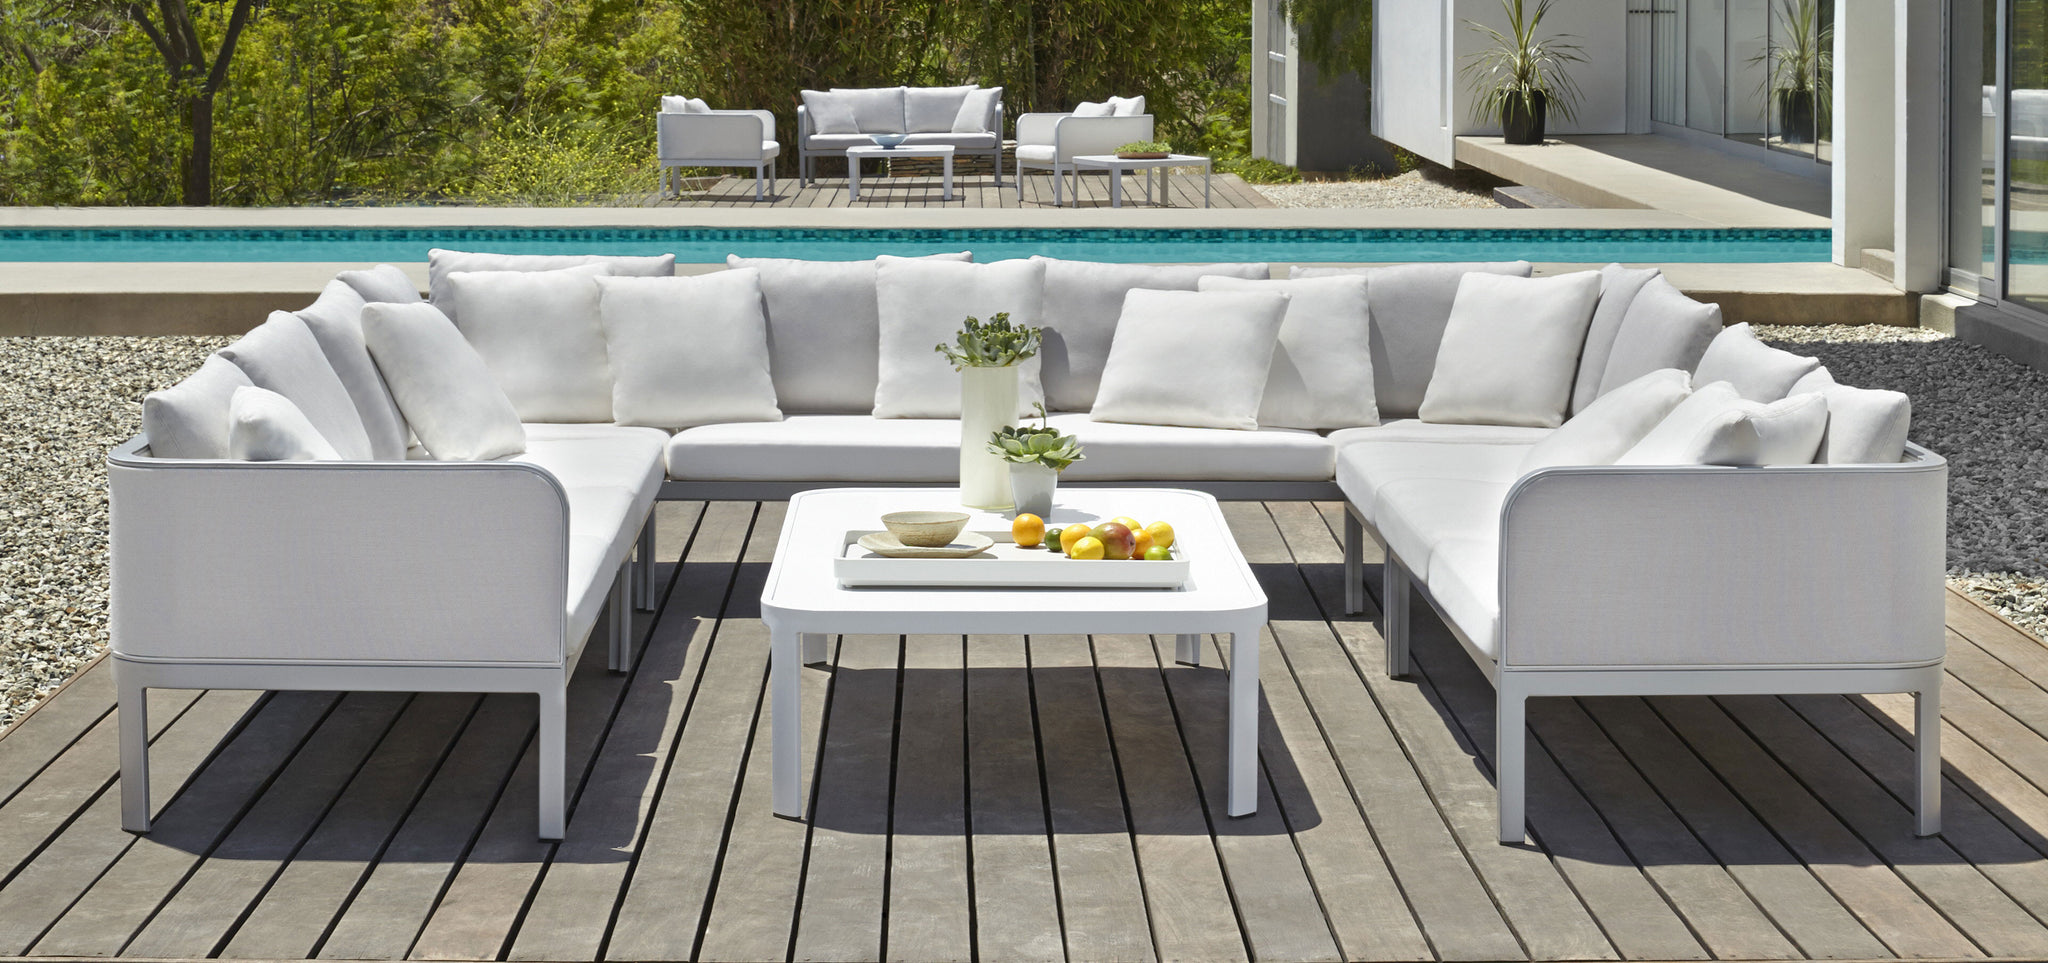 Top 5 Patio Furniture Brands